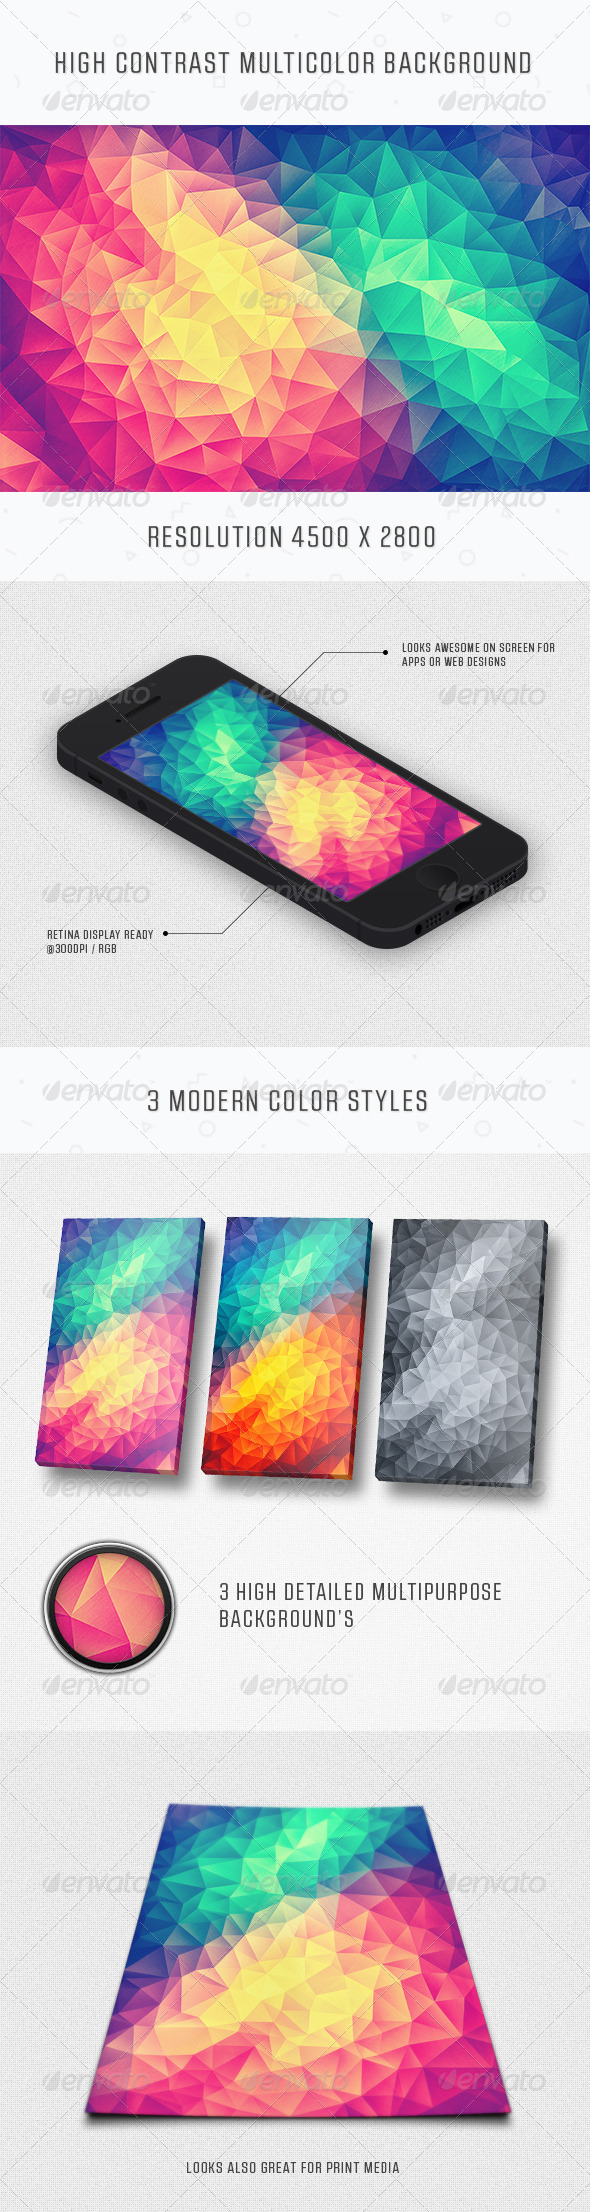 GraphicRiver Modern High Contrast Multicolor Polygon Background 8499244